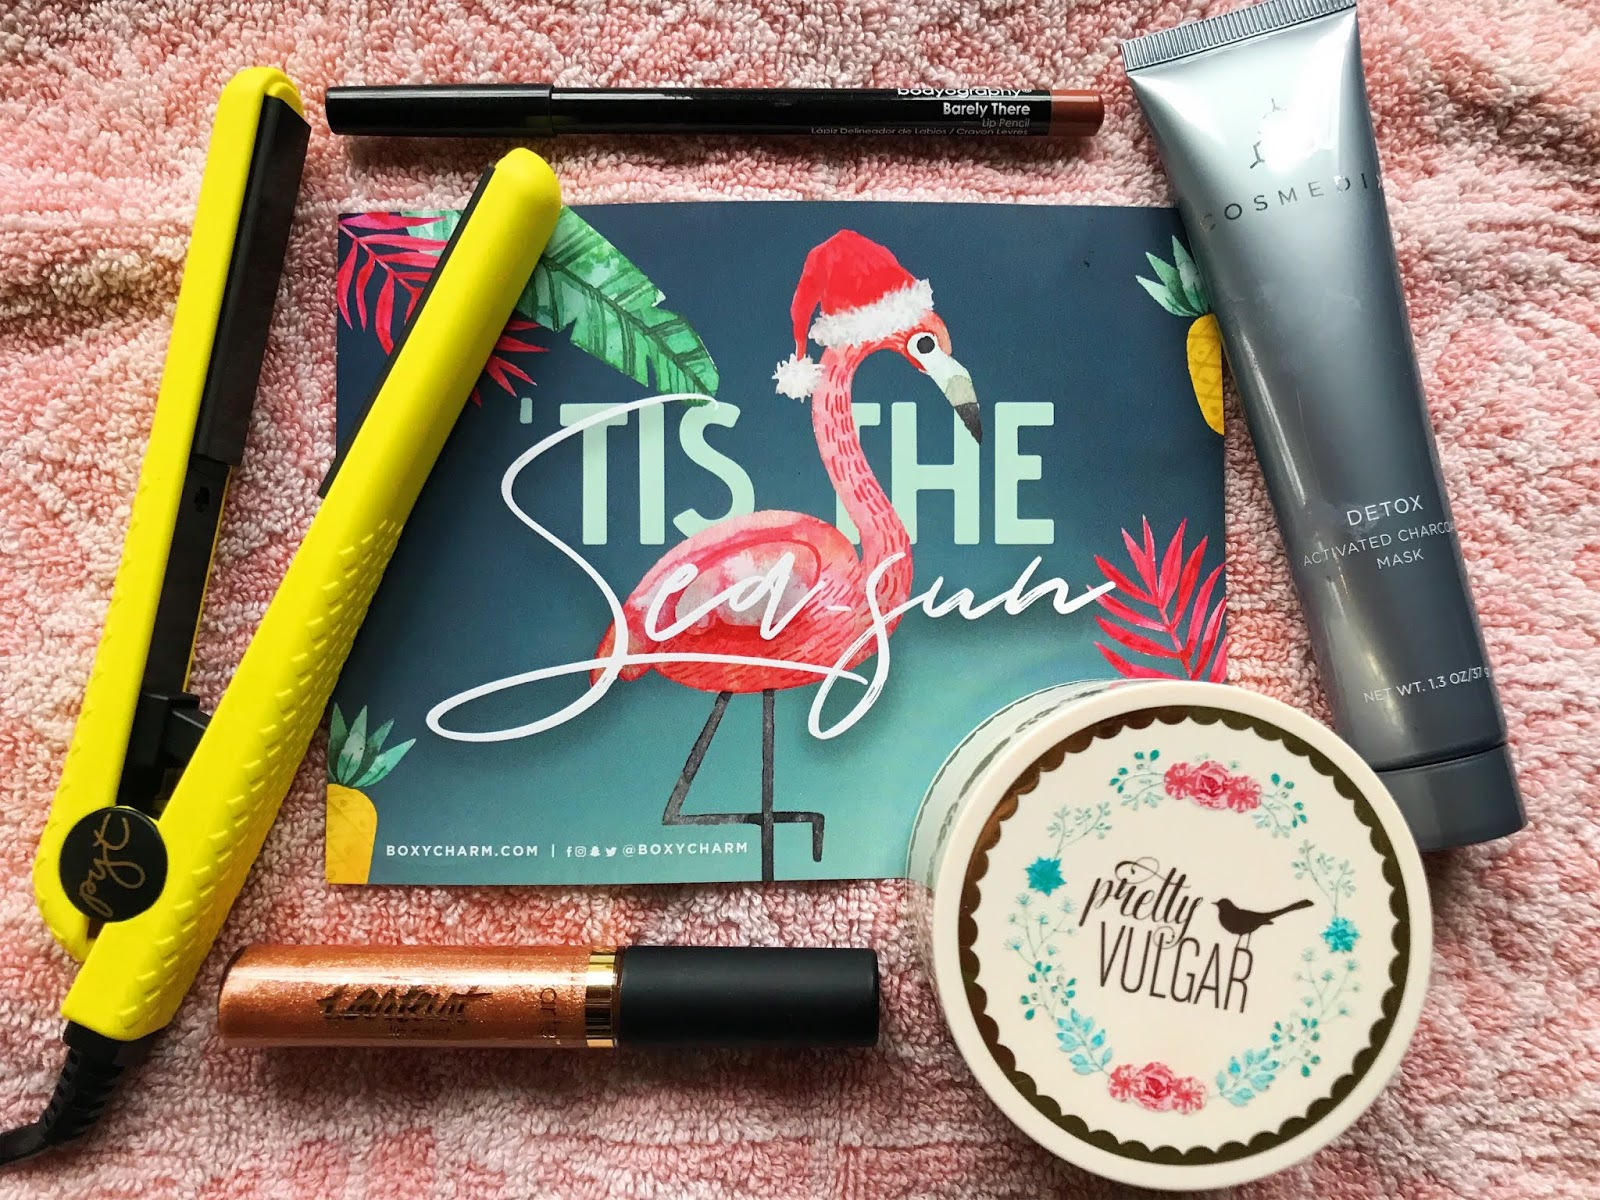 Priya the Blog, Nashville beauty blog, Nashville beauty blogger, Boxycharm, Boxycharm review, Boxycharm December 2018, beauty review, subscription service, Tarte, PYT, Bodyography, Cosmedix, Pretty Vulgar, PYT Mini Ceramic Styler, Tarte Shimmer Lip Paint, Bodyography Lip Pencil in Barely There, Pretty Vulgar The Powder Room in Matte About It, Cosmedix Activated Charcoal Mask